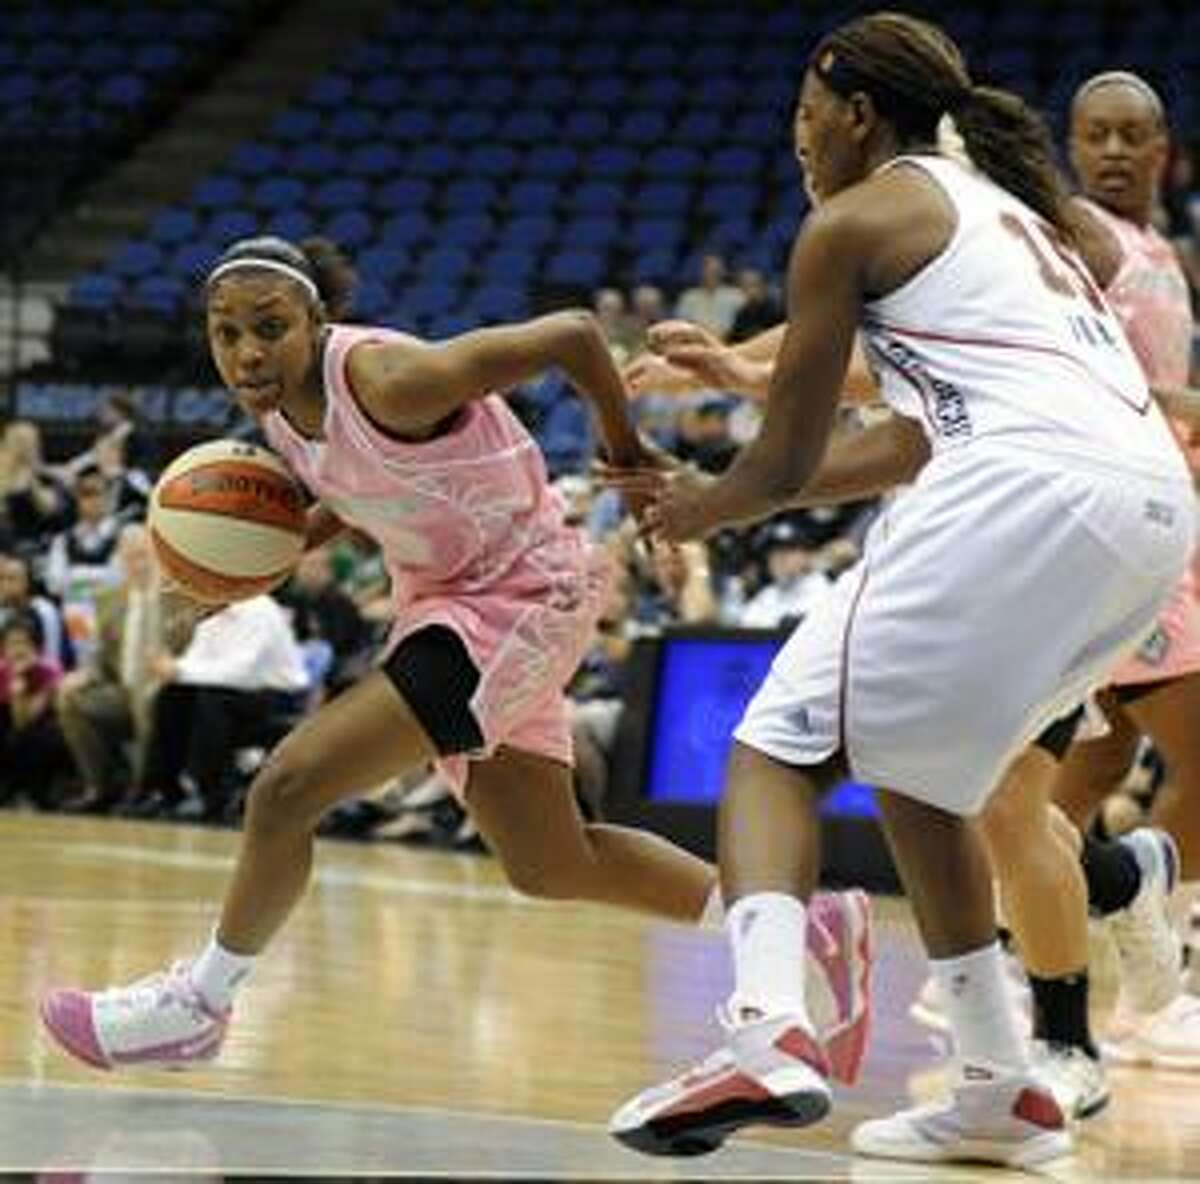 AP Minnesota Lynx's Renee Montgomery, left, breaks away from Connecticut Sun's Asjha Jones (15) during a WNBA game in Minneapolis on Friday. The Lynx wore pink jerseys, shorts and shoes as part of Breast Health Awareness Night.